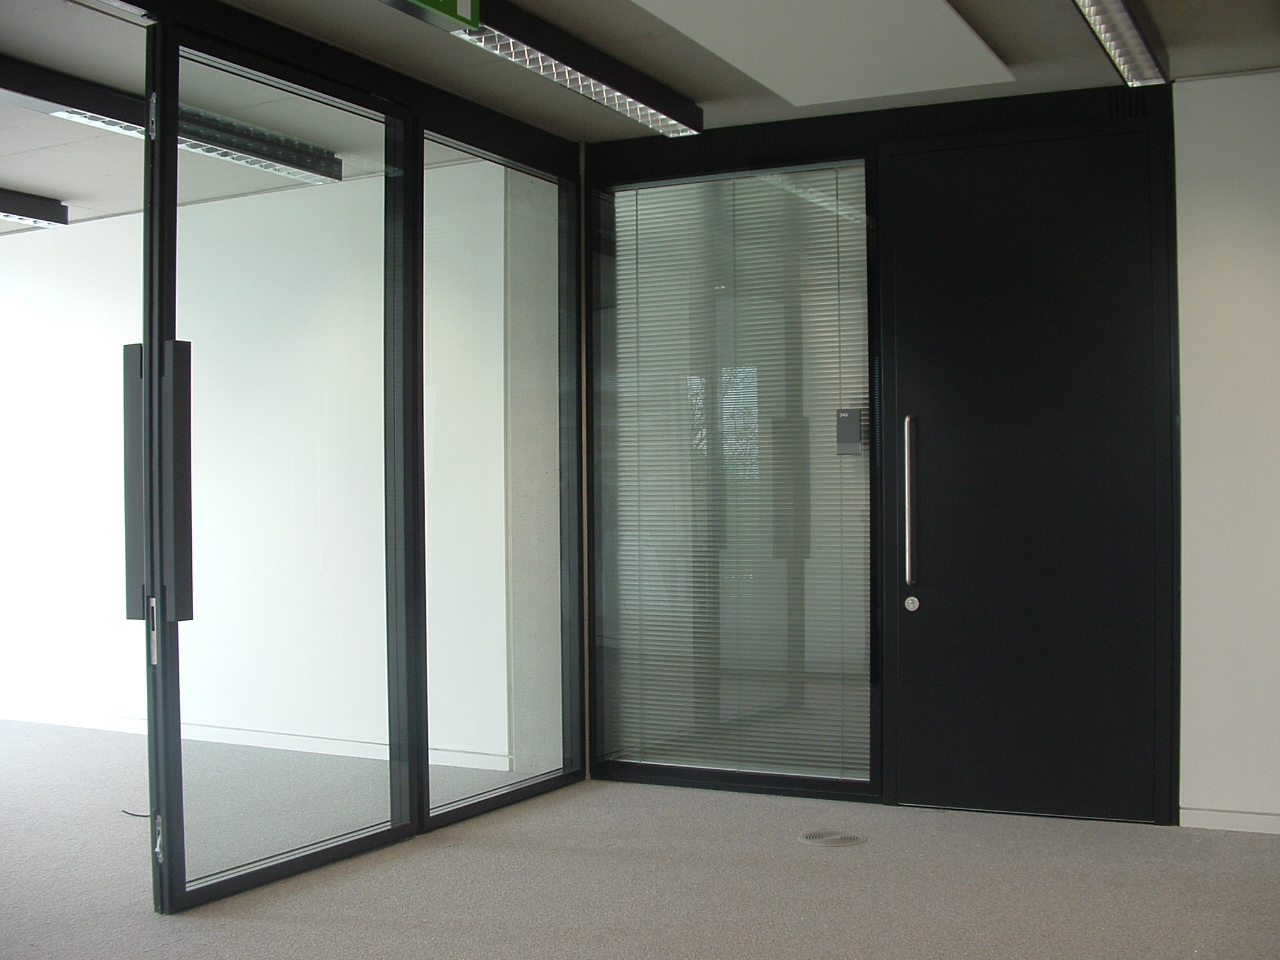 Manor Road - Glazed Partitions and Steel Doors